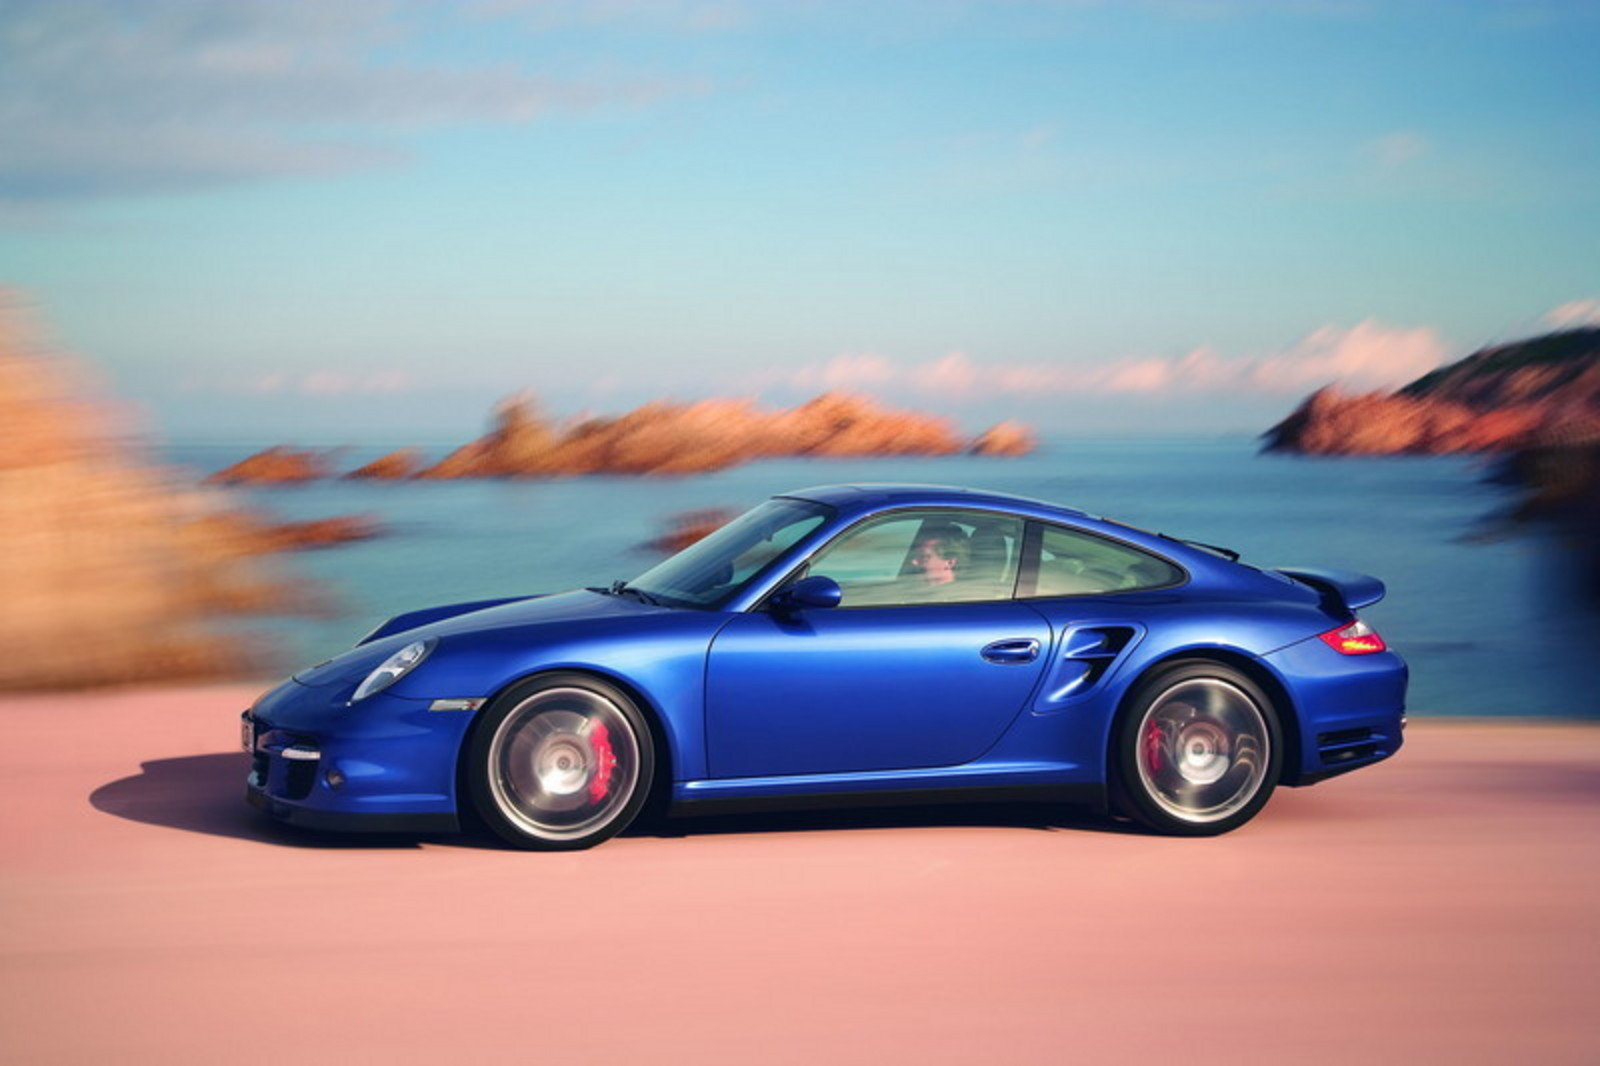 2007 porsche 911 turbo 997 picture 54749 car review top speed. Black Bedroom Furniture Sets. Home Design Ideas